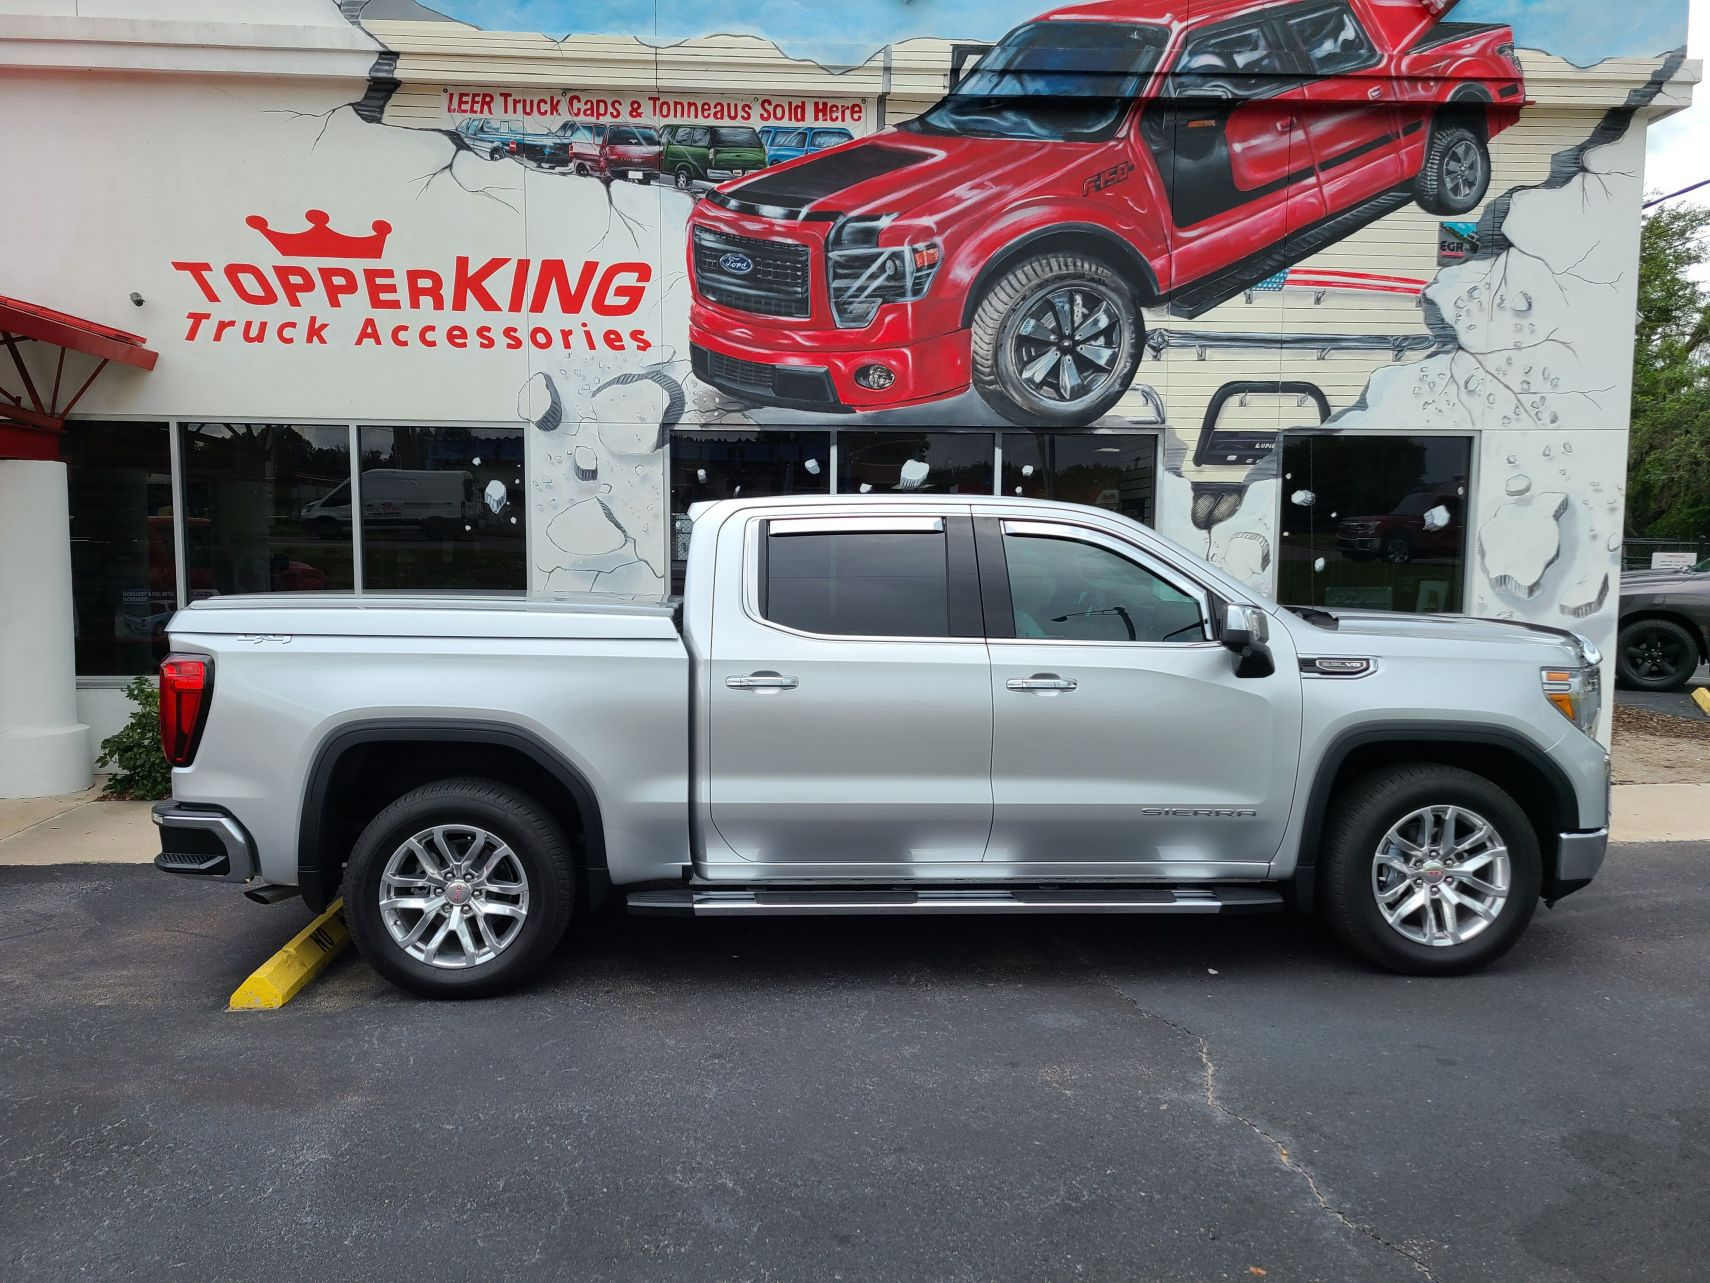 2020 GMC Sierra with LEER 700 Lid, Vent Visors, Bug Guard, Running Boards, Hitch, Tint by TopperKING Brandon 813-689-2449 or Clearwater 727-530-9066. Call!